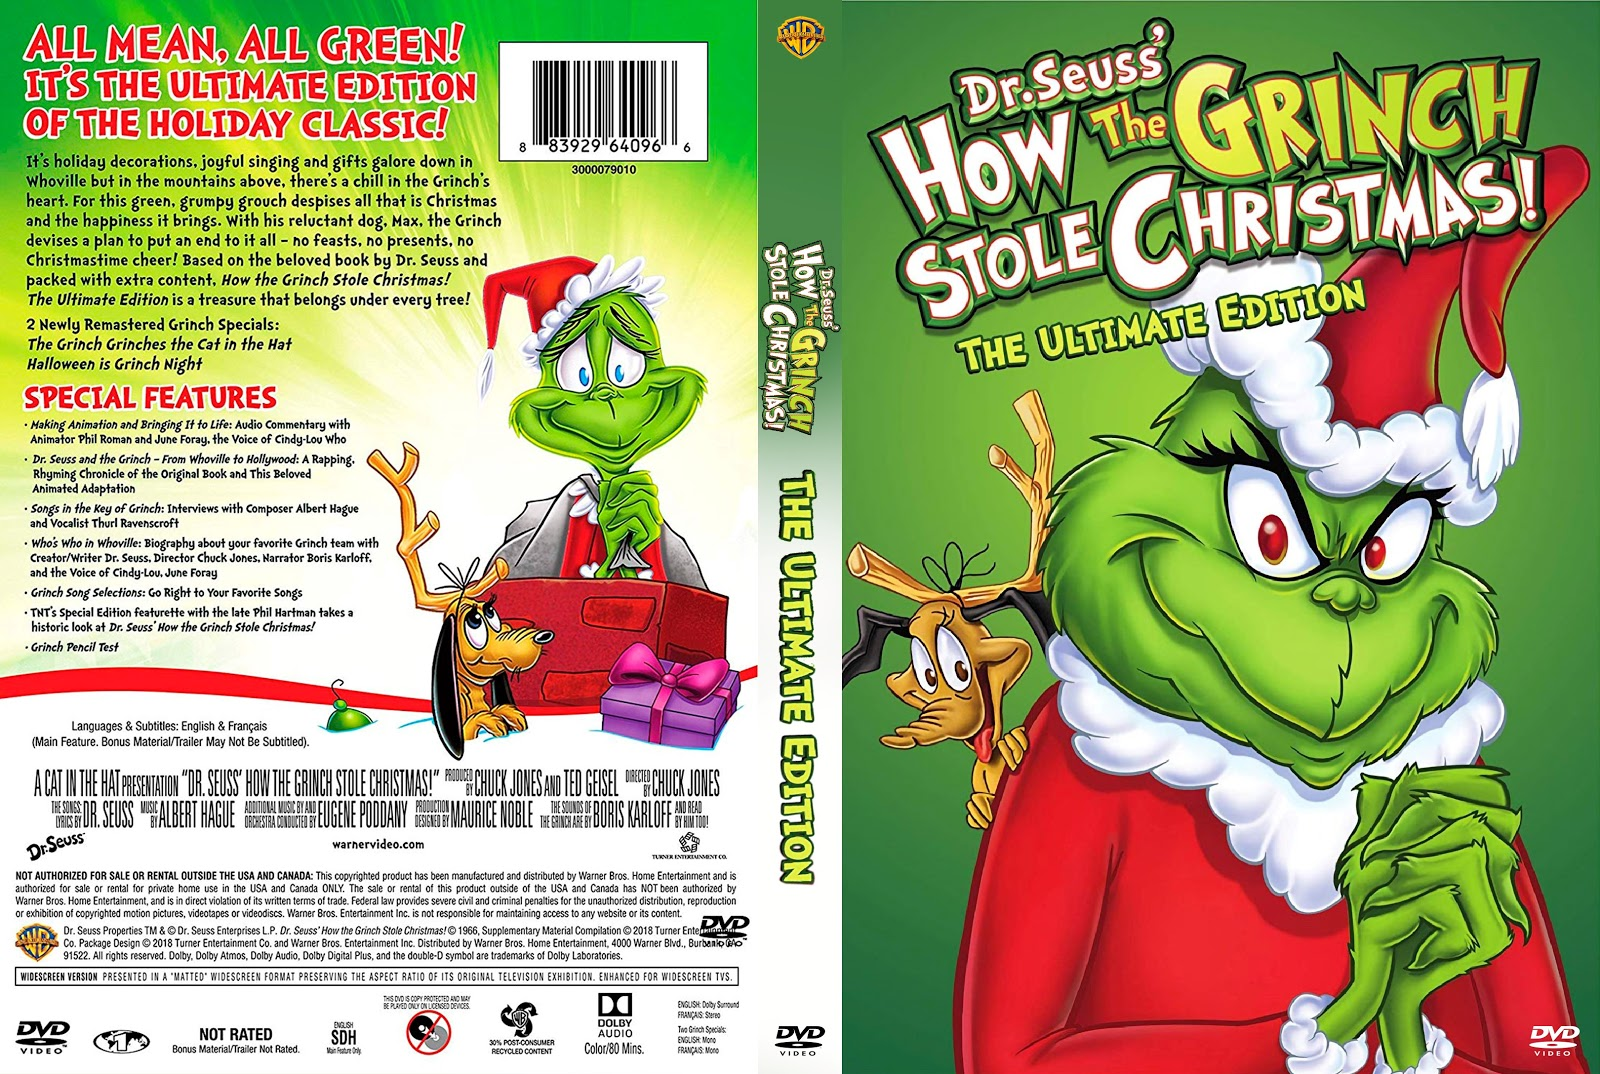 How The Grinch Stole Christmas Movie Poster.How The Grinch Stole Christmas Ultimate Edition Dvd Cover